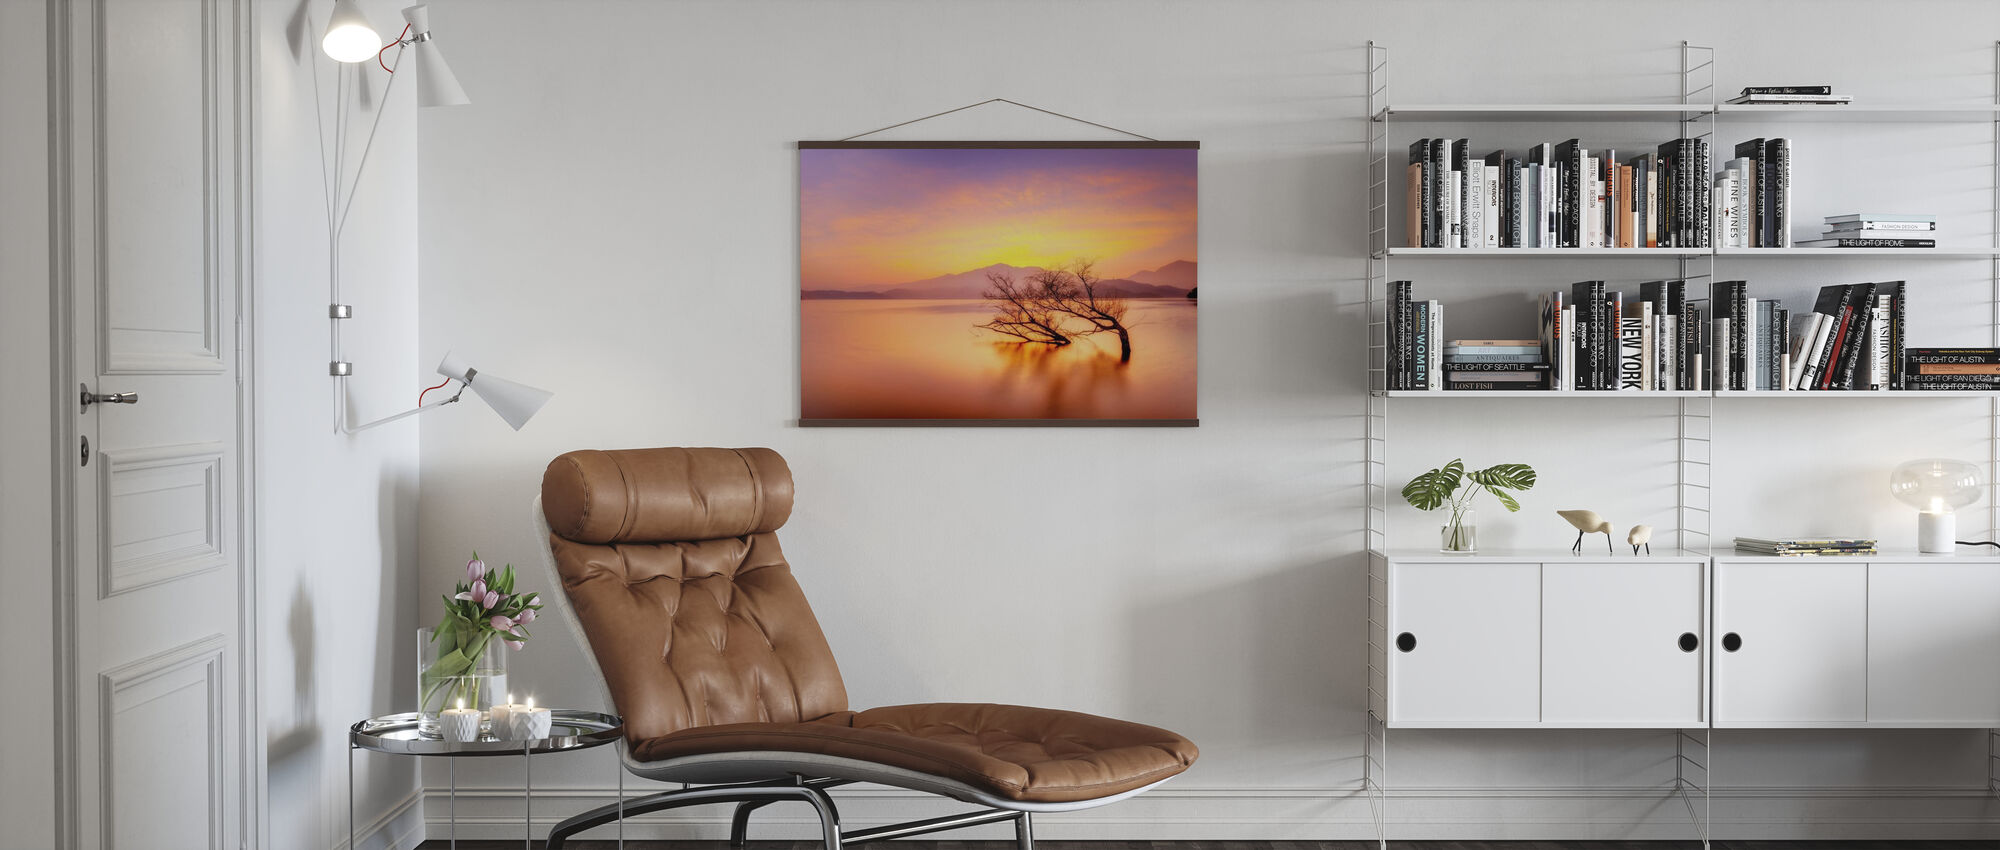 Rosy Sunset over Lake - Poster - Living Room